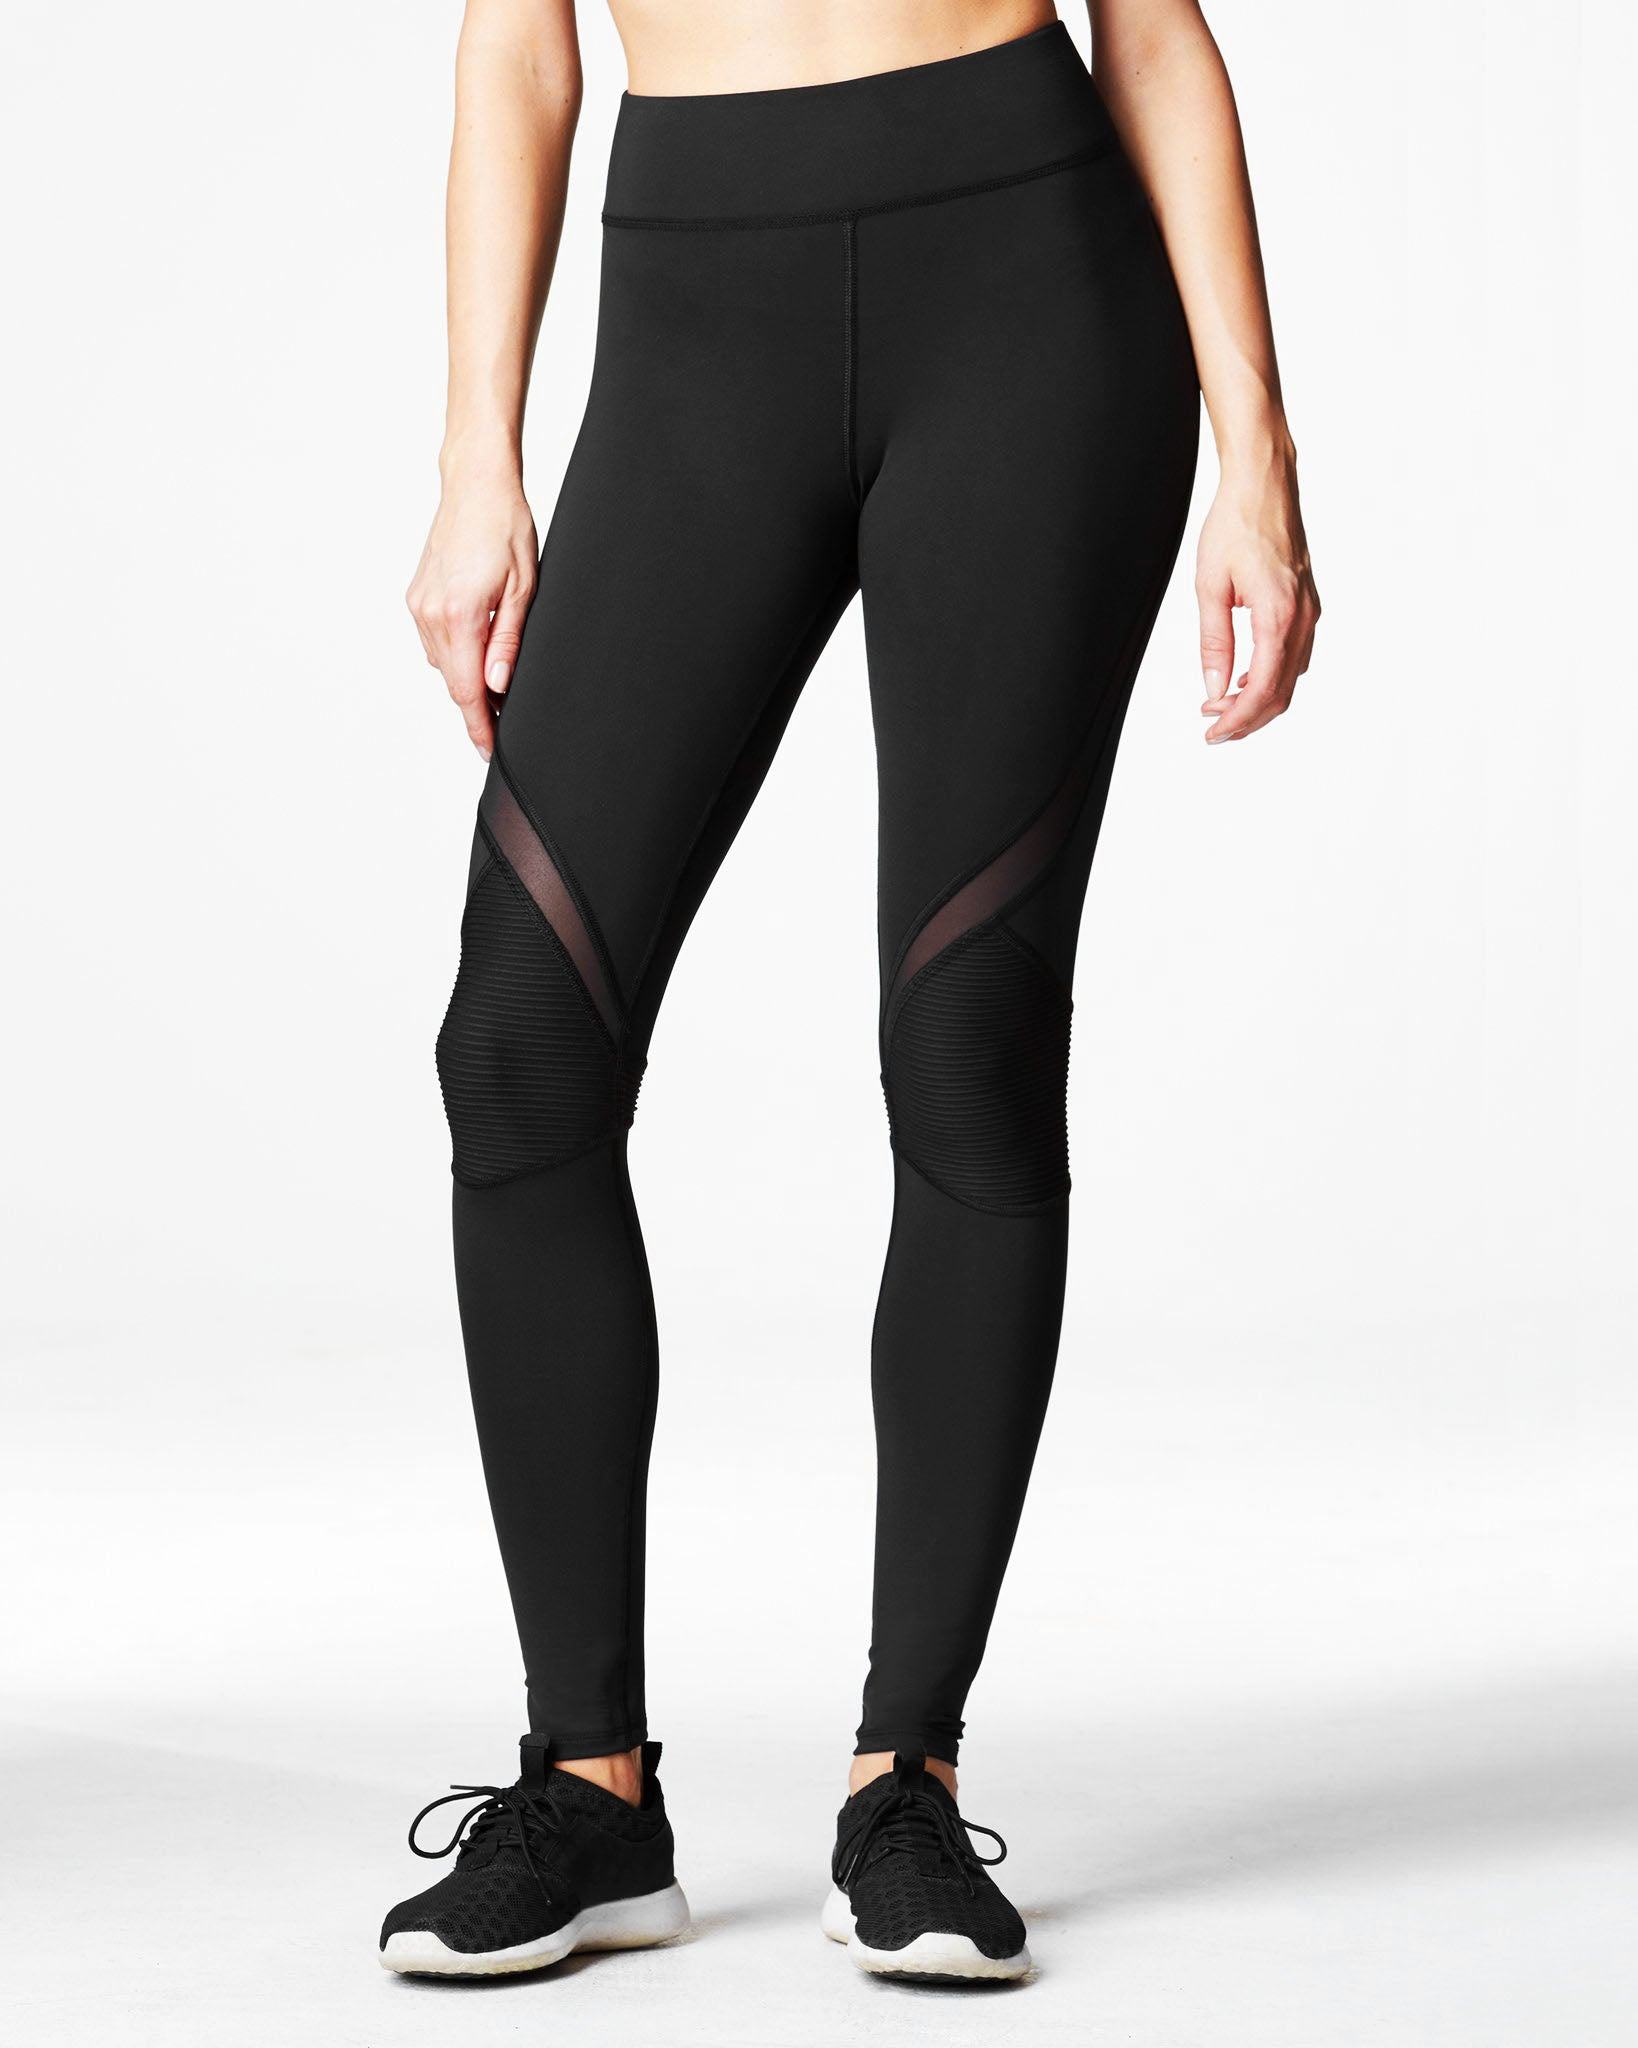 chicane-legging-black